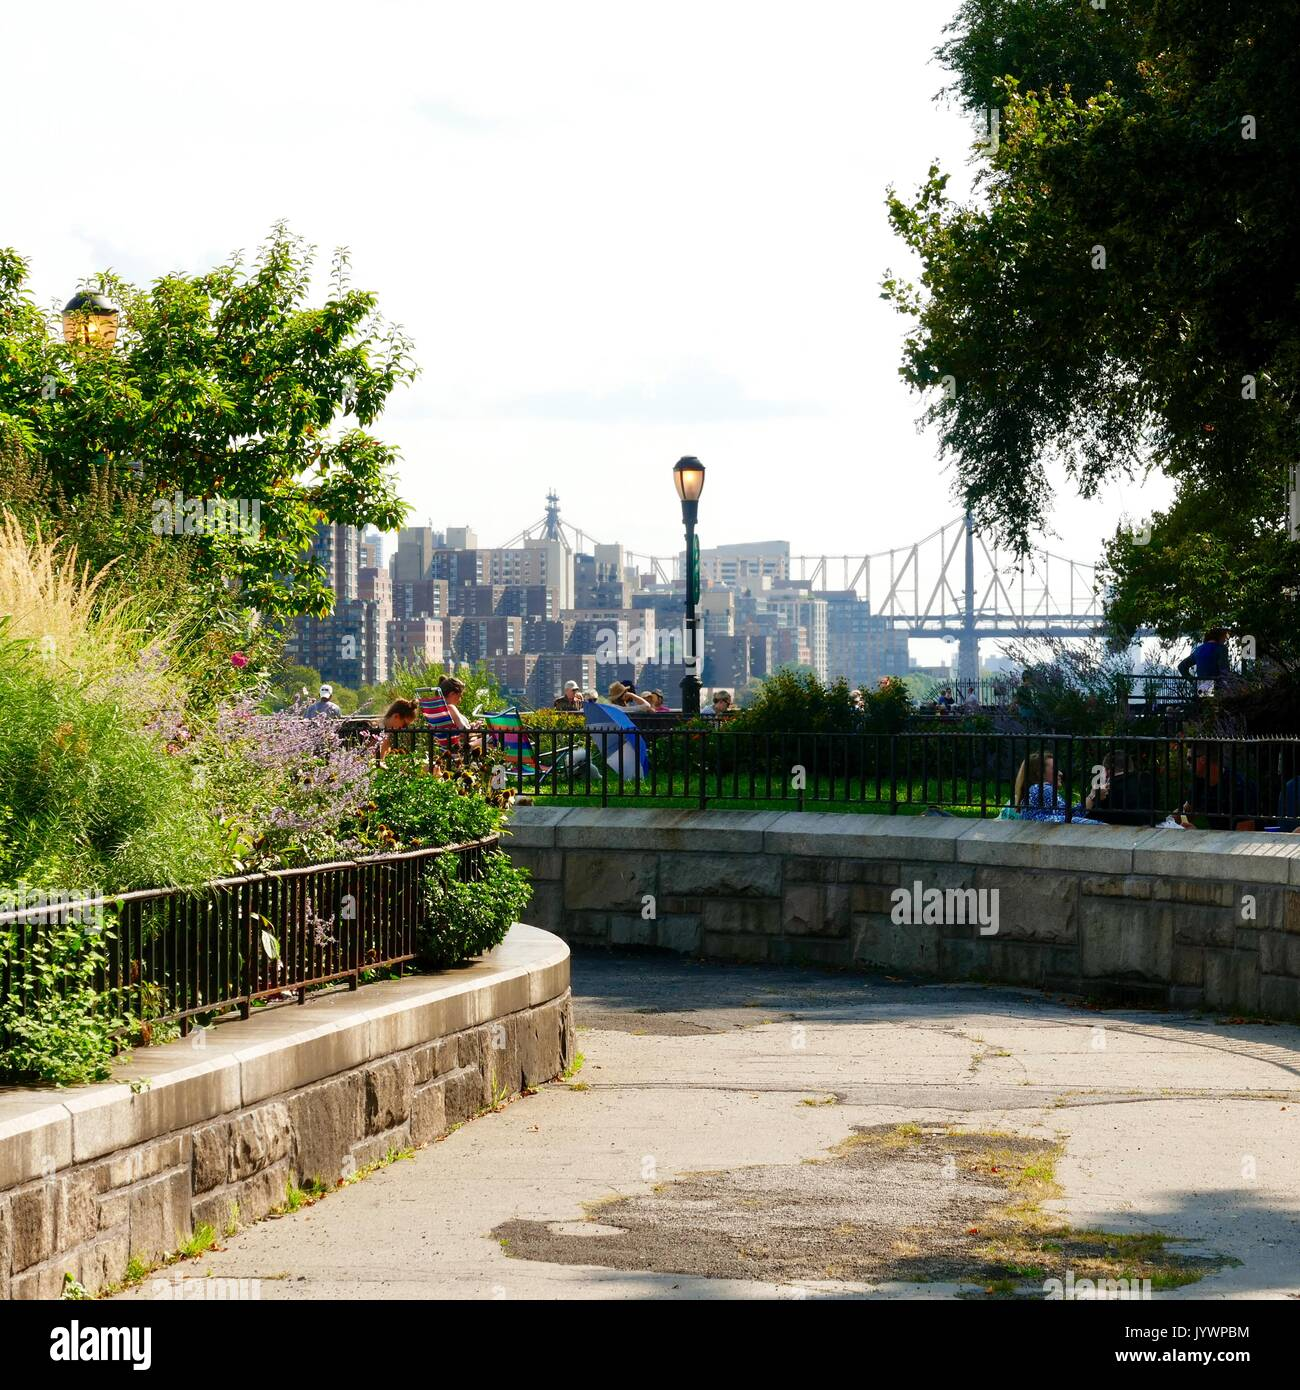 People relaxing on the grass at Carl Schurz Park on a Saturday afternoon. Upper Eastside, Manhattan, New York, New York, USA. - Stock Image